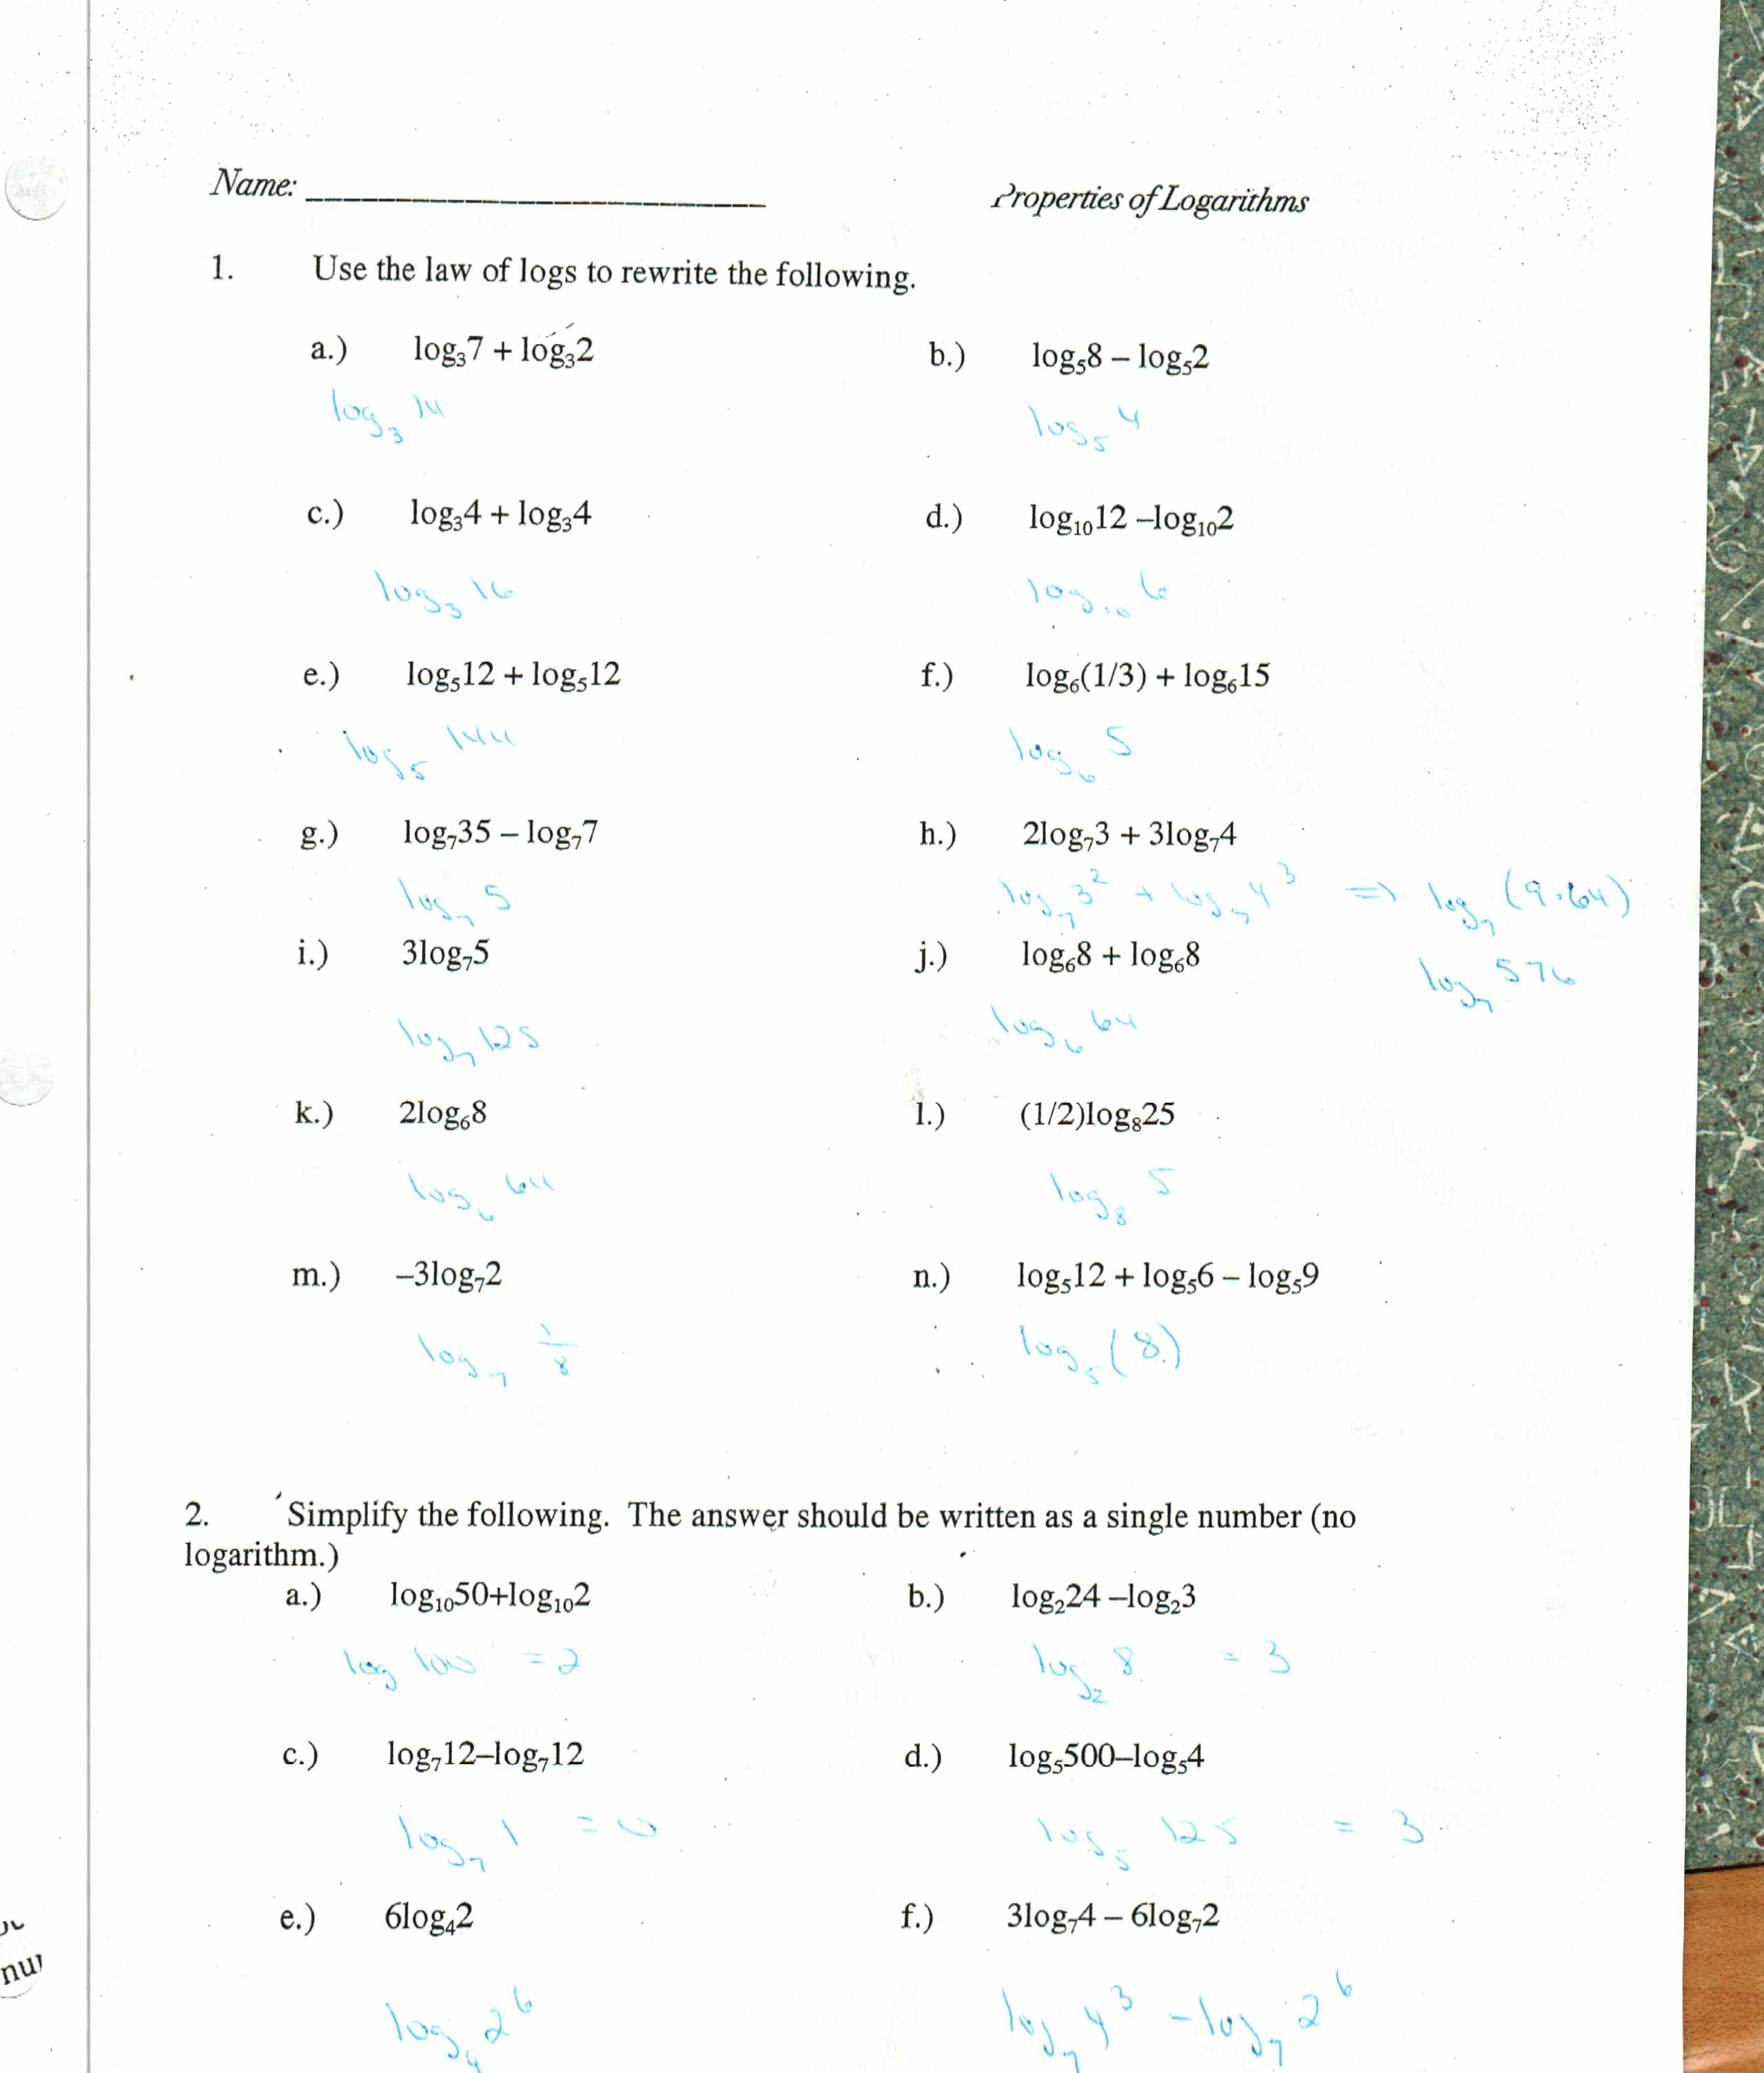 worksheet Solving Log Equations Worksheet worksheet logarithms discoverymuseumwv worksheets for printables solving logarithmic equations pdf with key 27 log questions equatiosn problem equation